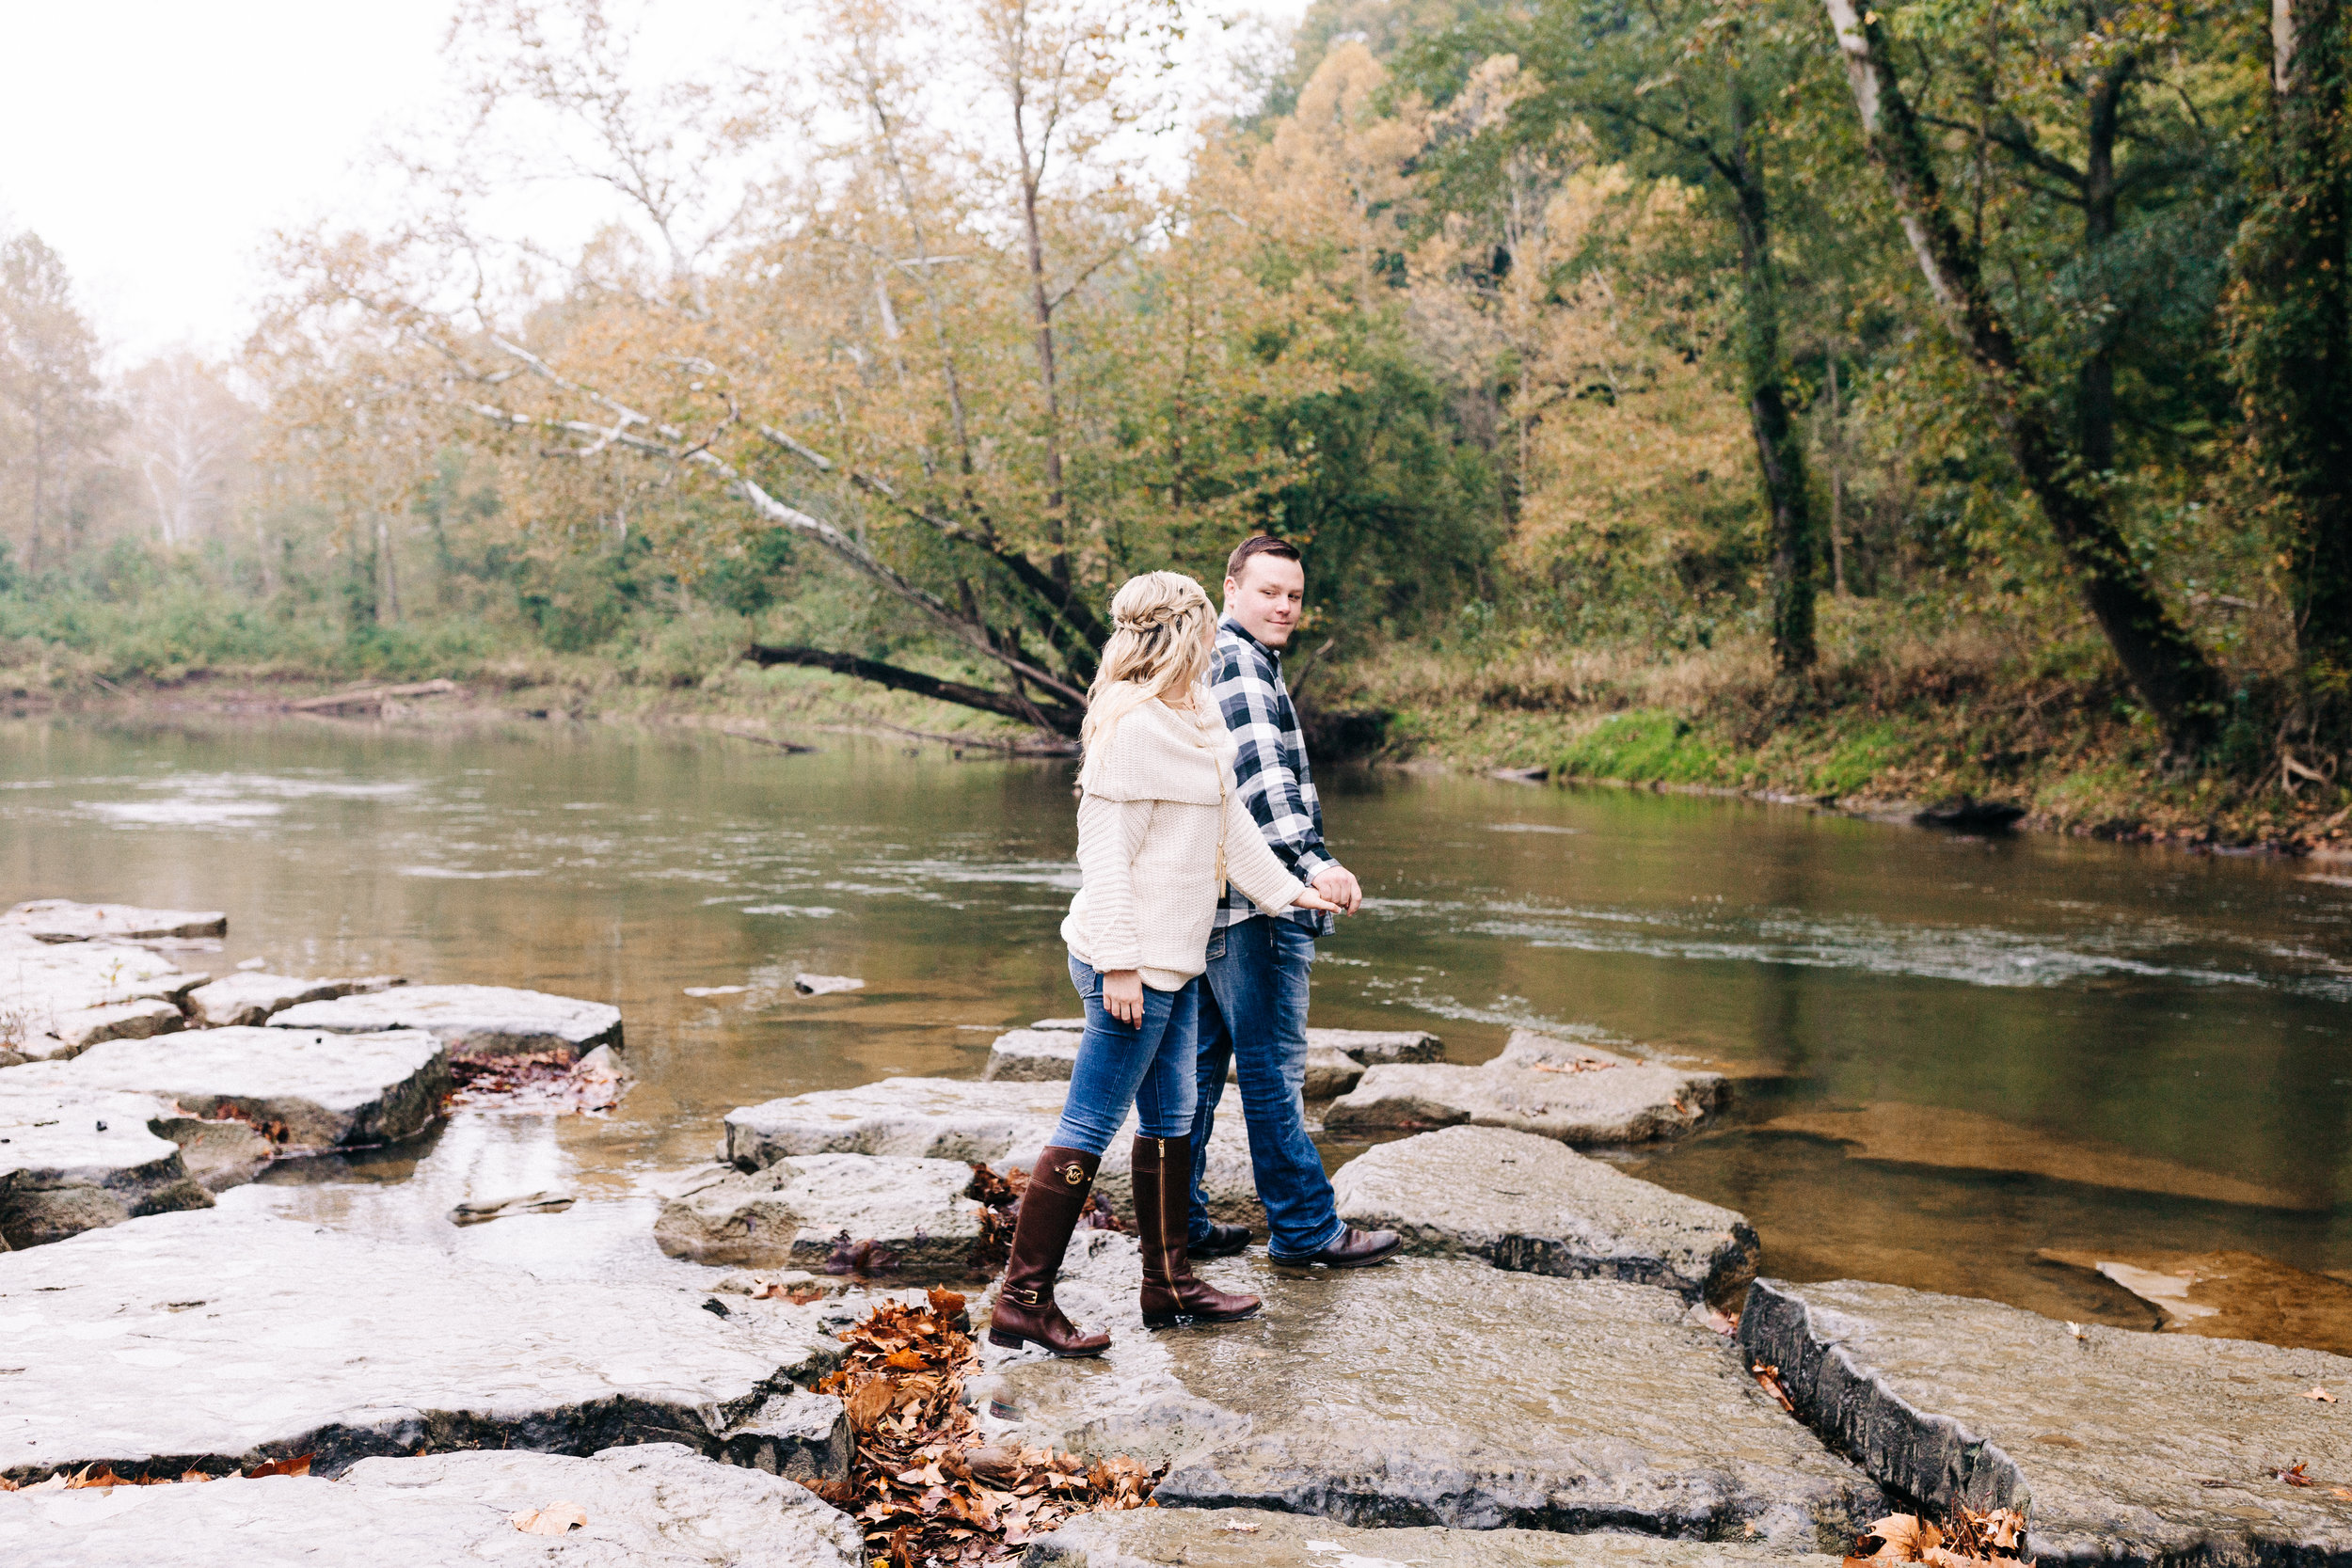 Dorothy_Louise_Photography_Alyssa_Drew_Indiana_Engagement_Cataract_Falls-78.jpg